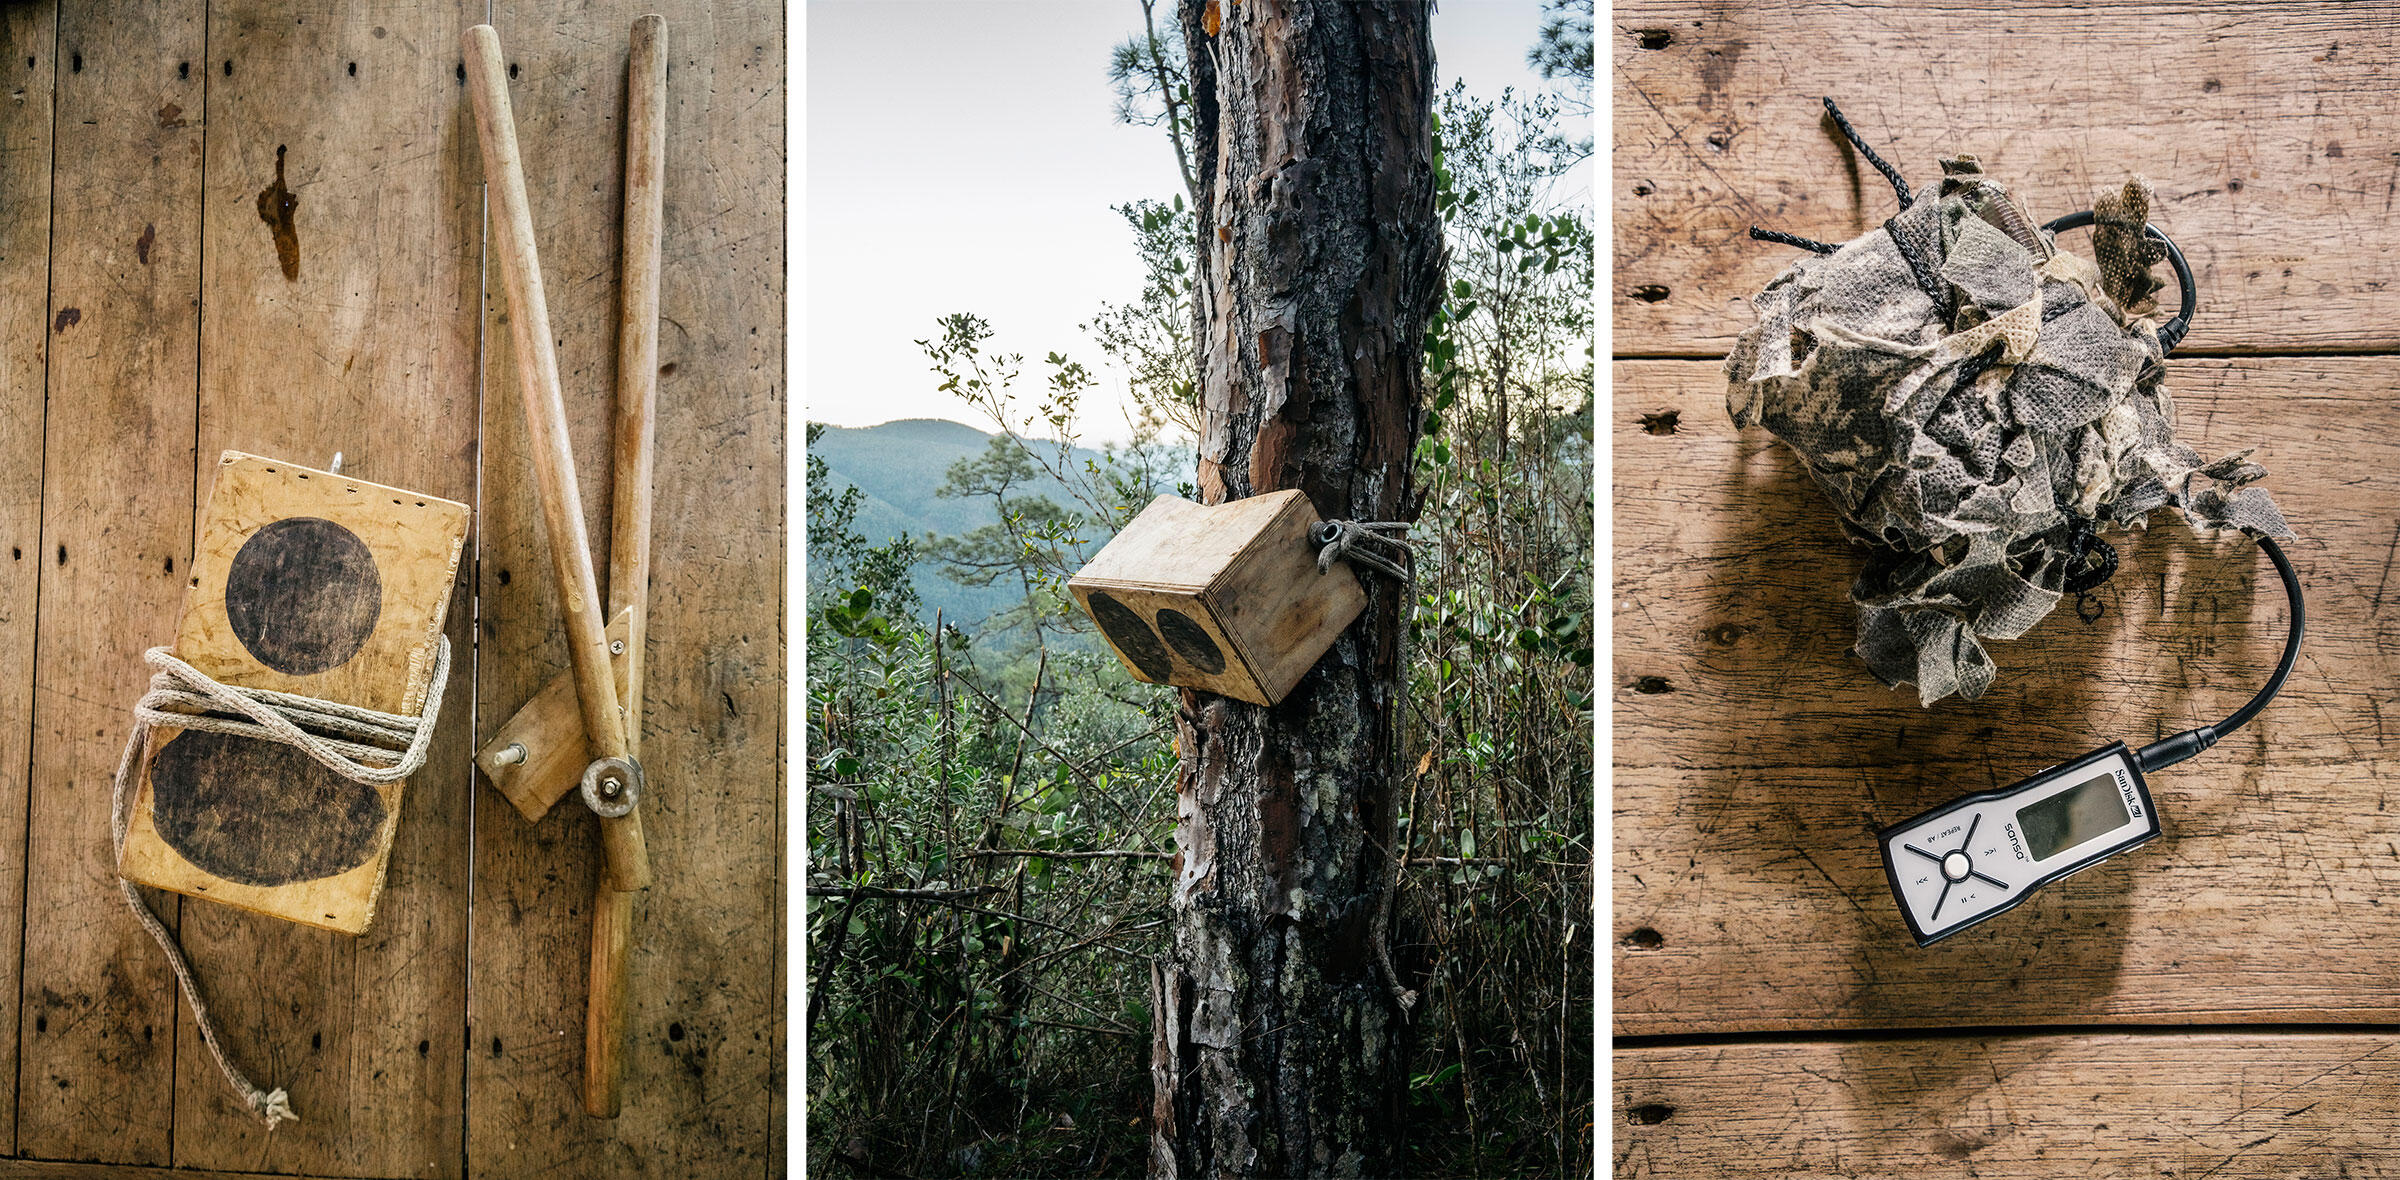 From left: The double-knock box used to simulate the BAM-bam the Ivory-bill would make on a pine; Lammertink's camouflaged audio feedback device plays bird calls. Photos: Greg Kahn